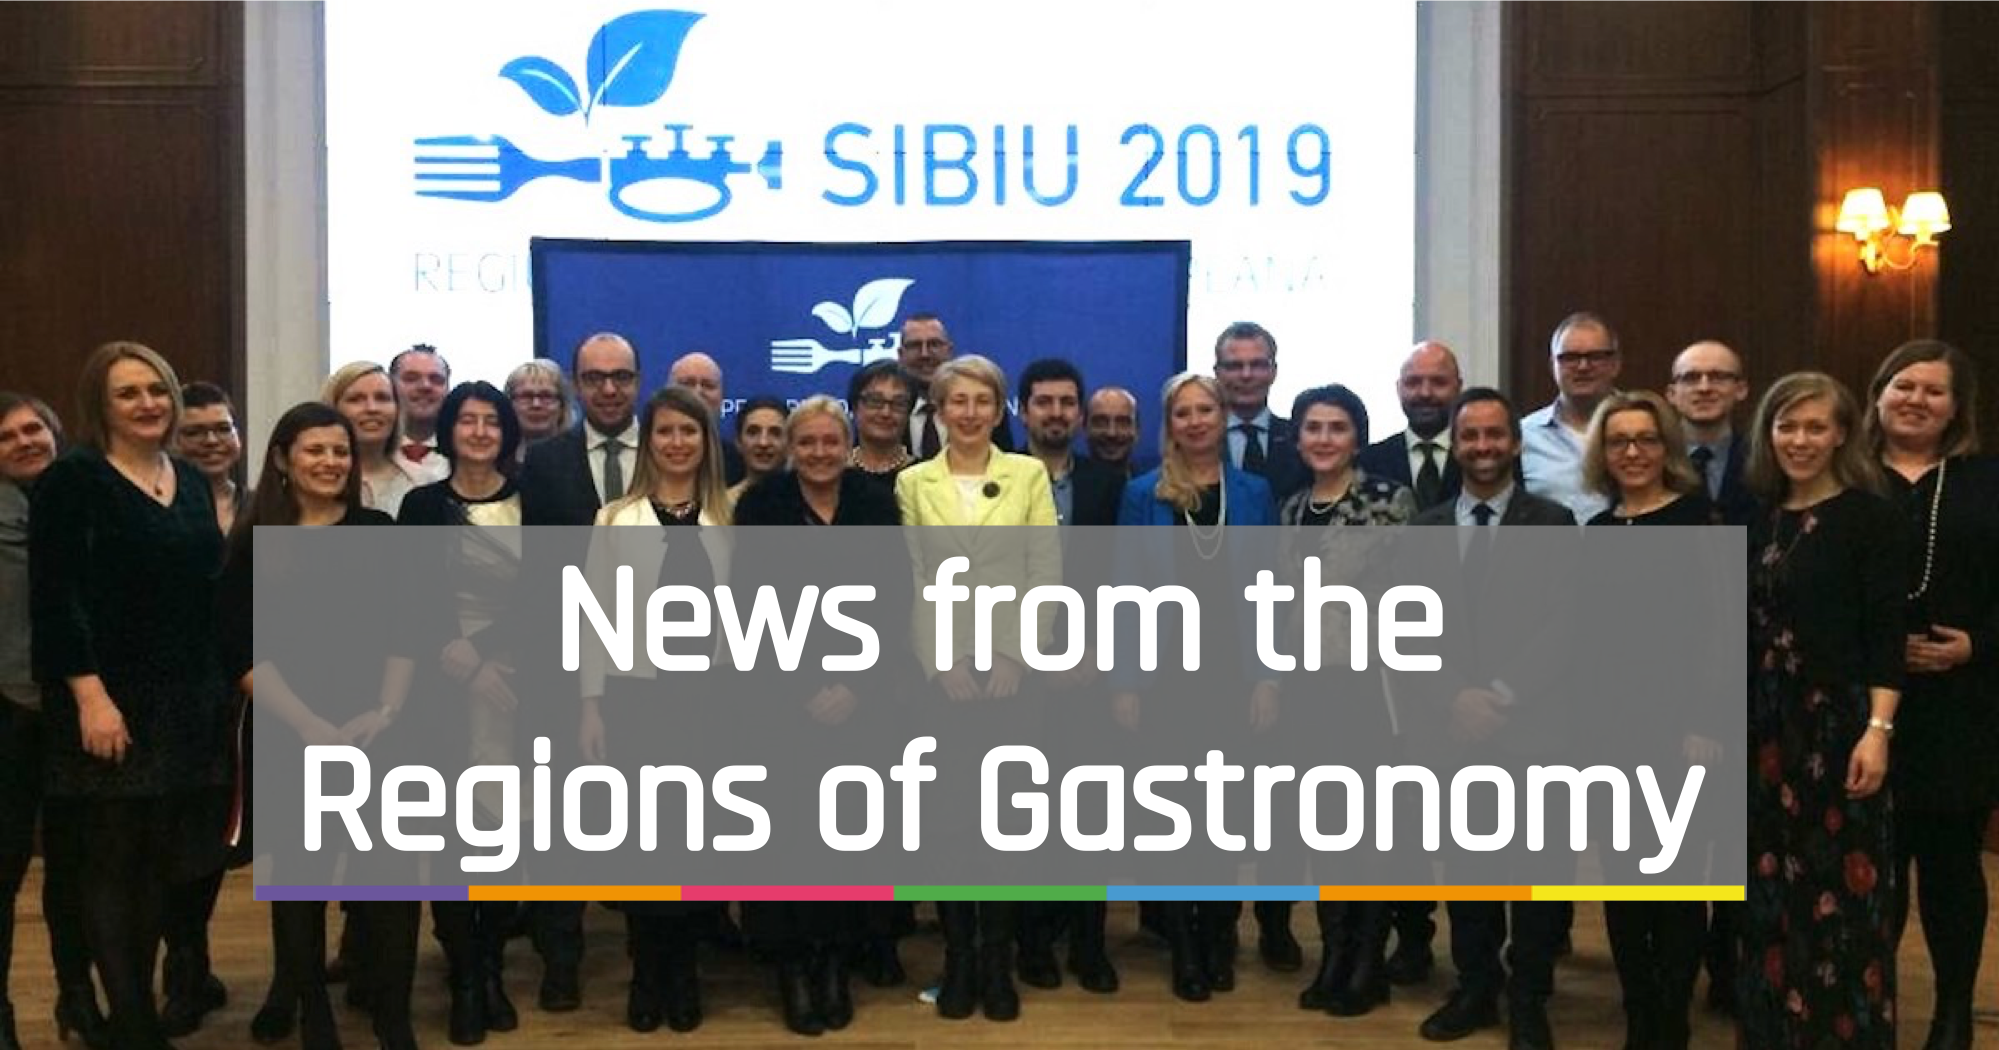 News from the Regions of Gastronomy